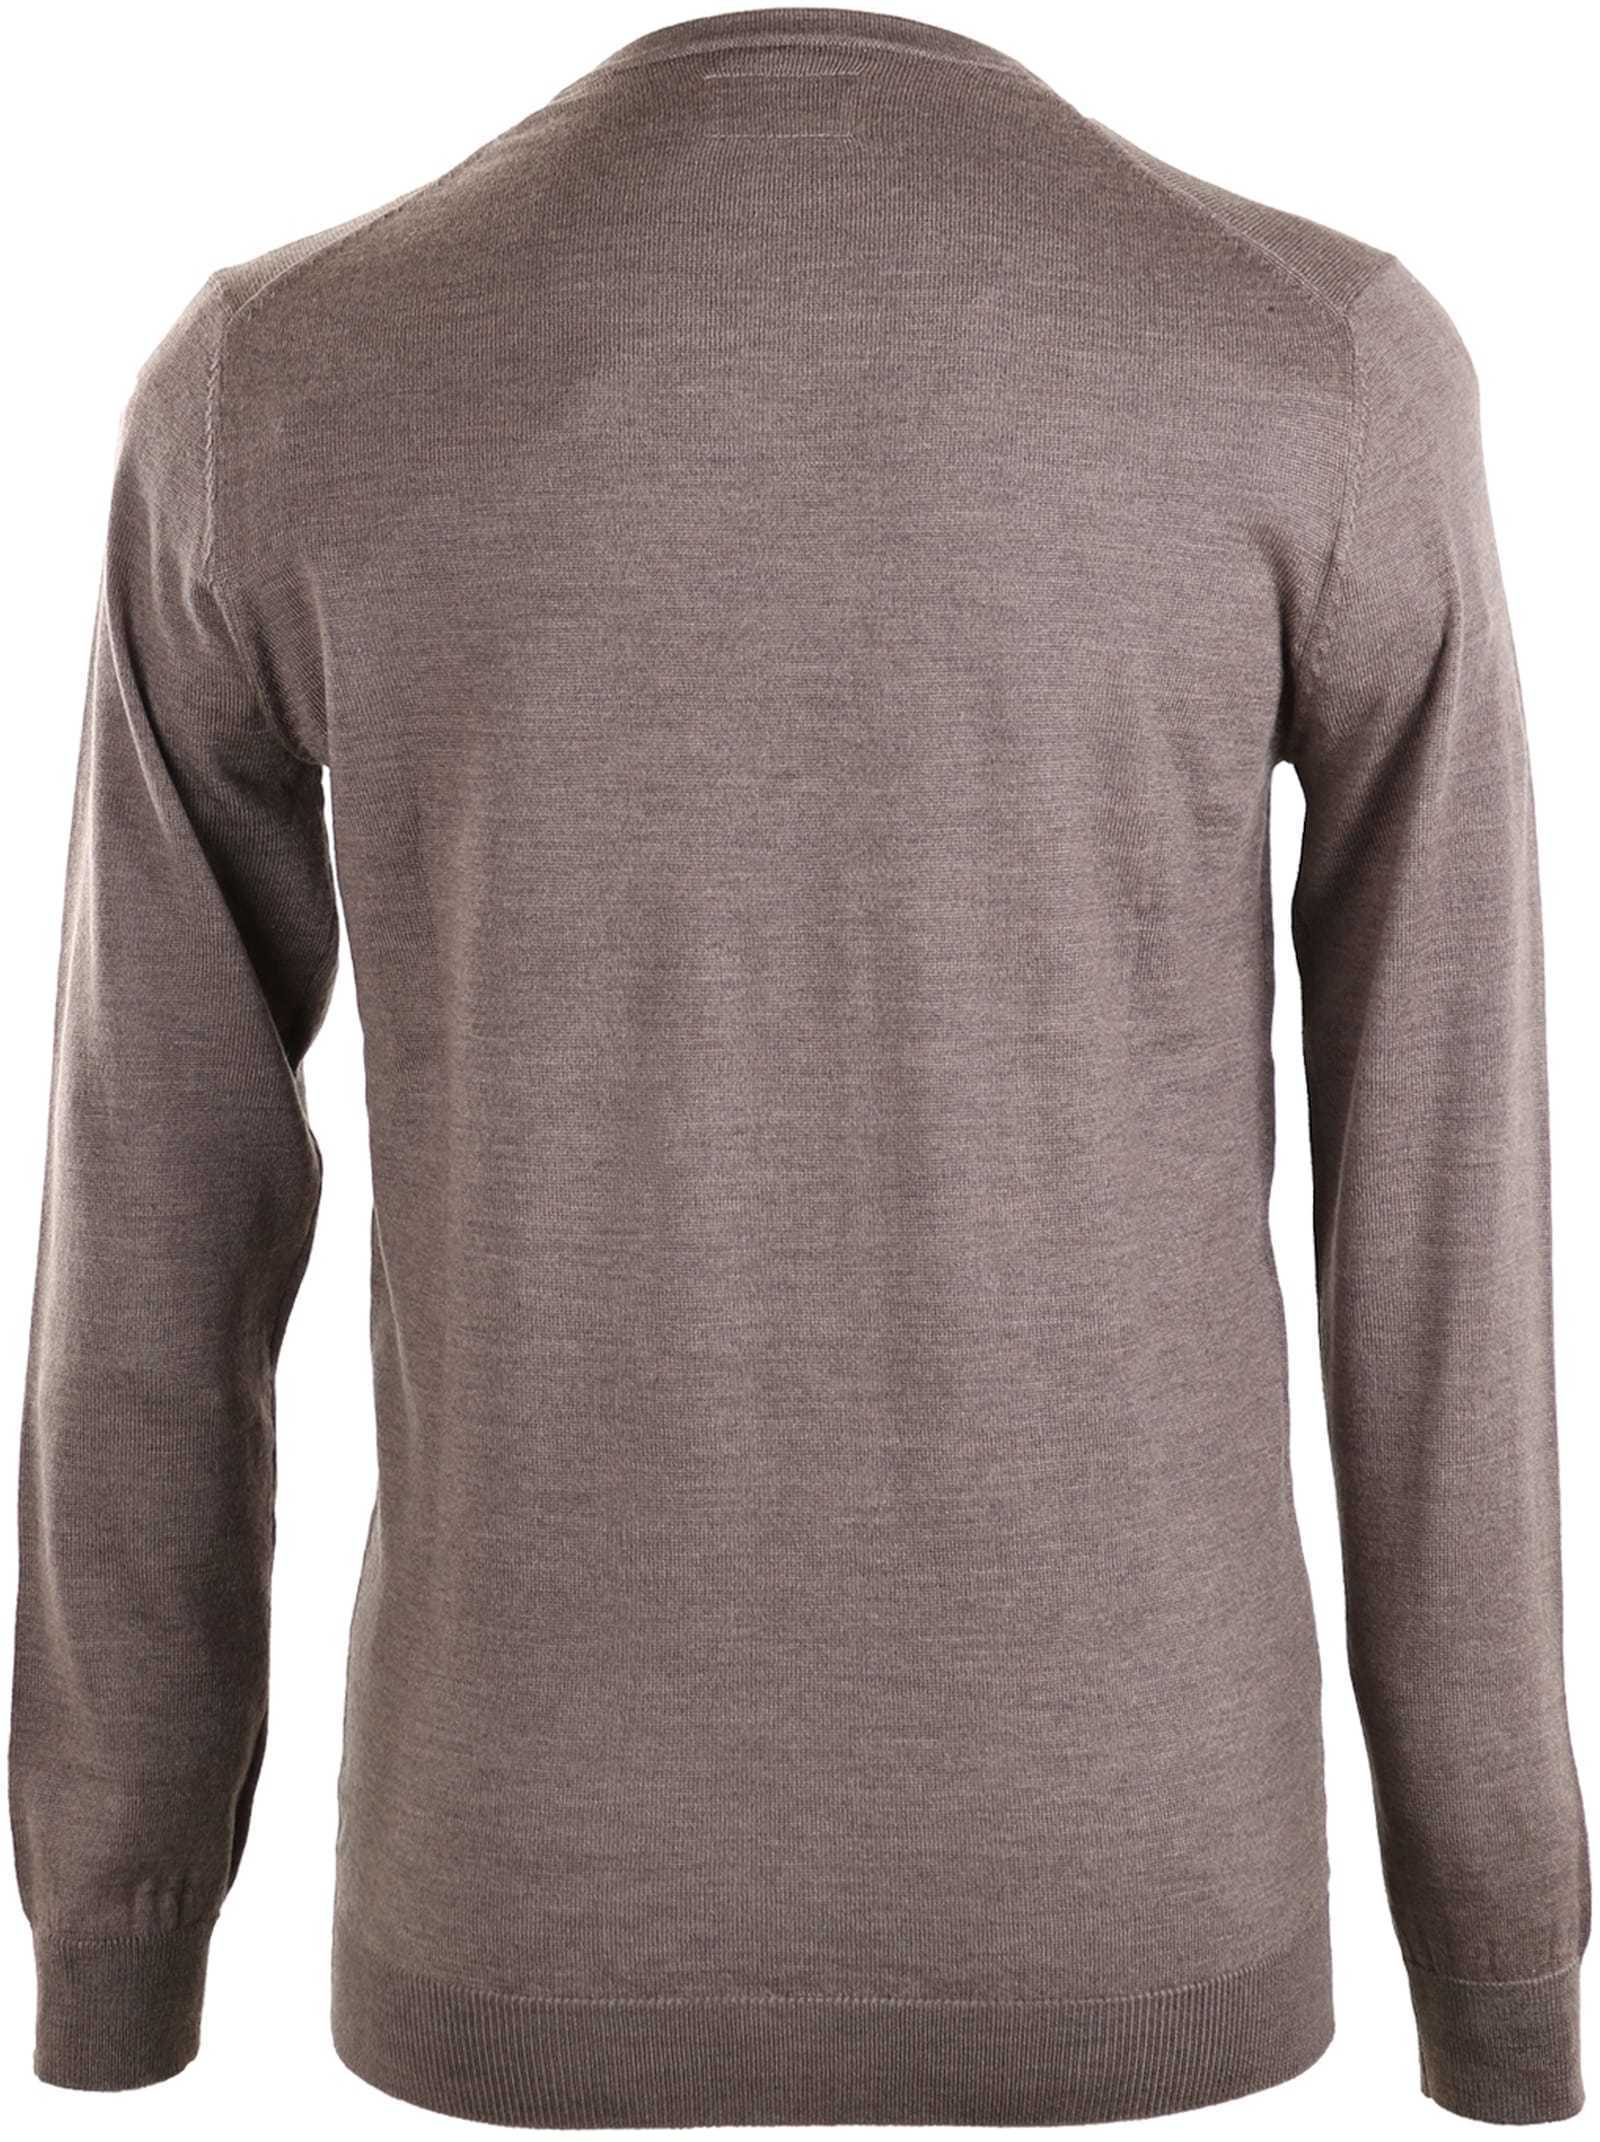 Suitable Pullover Merino Wool Brown foto 1